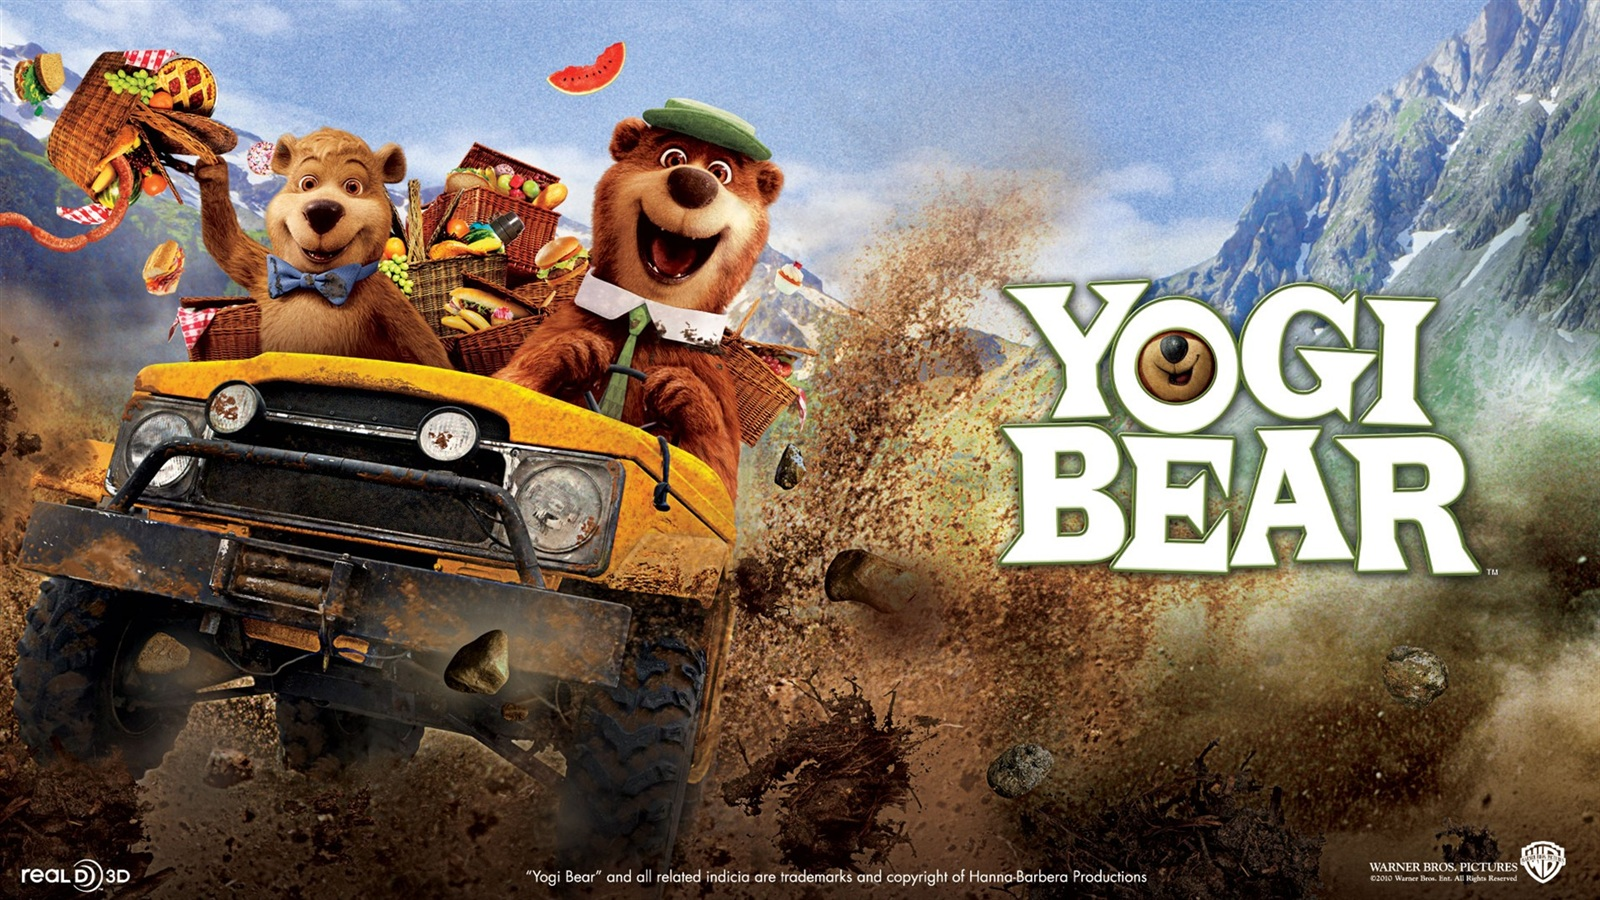 Yogi Bear wallpaper - 1600x900